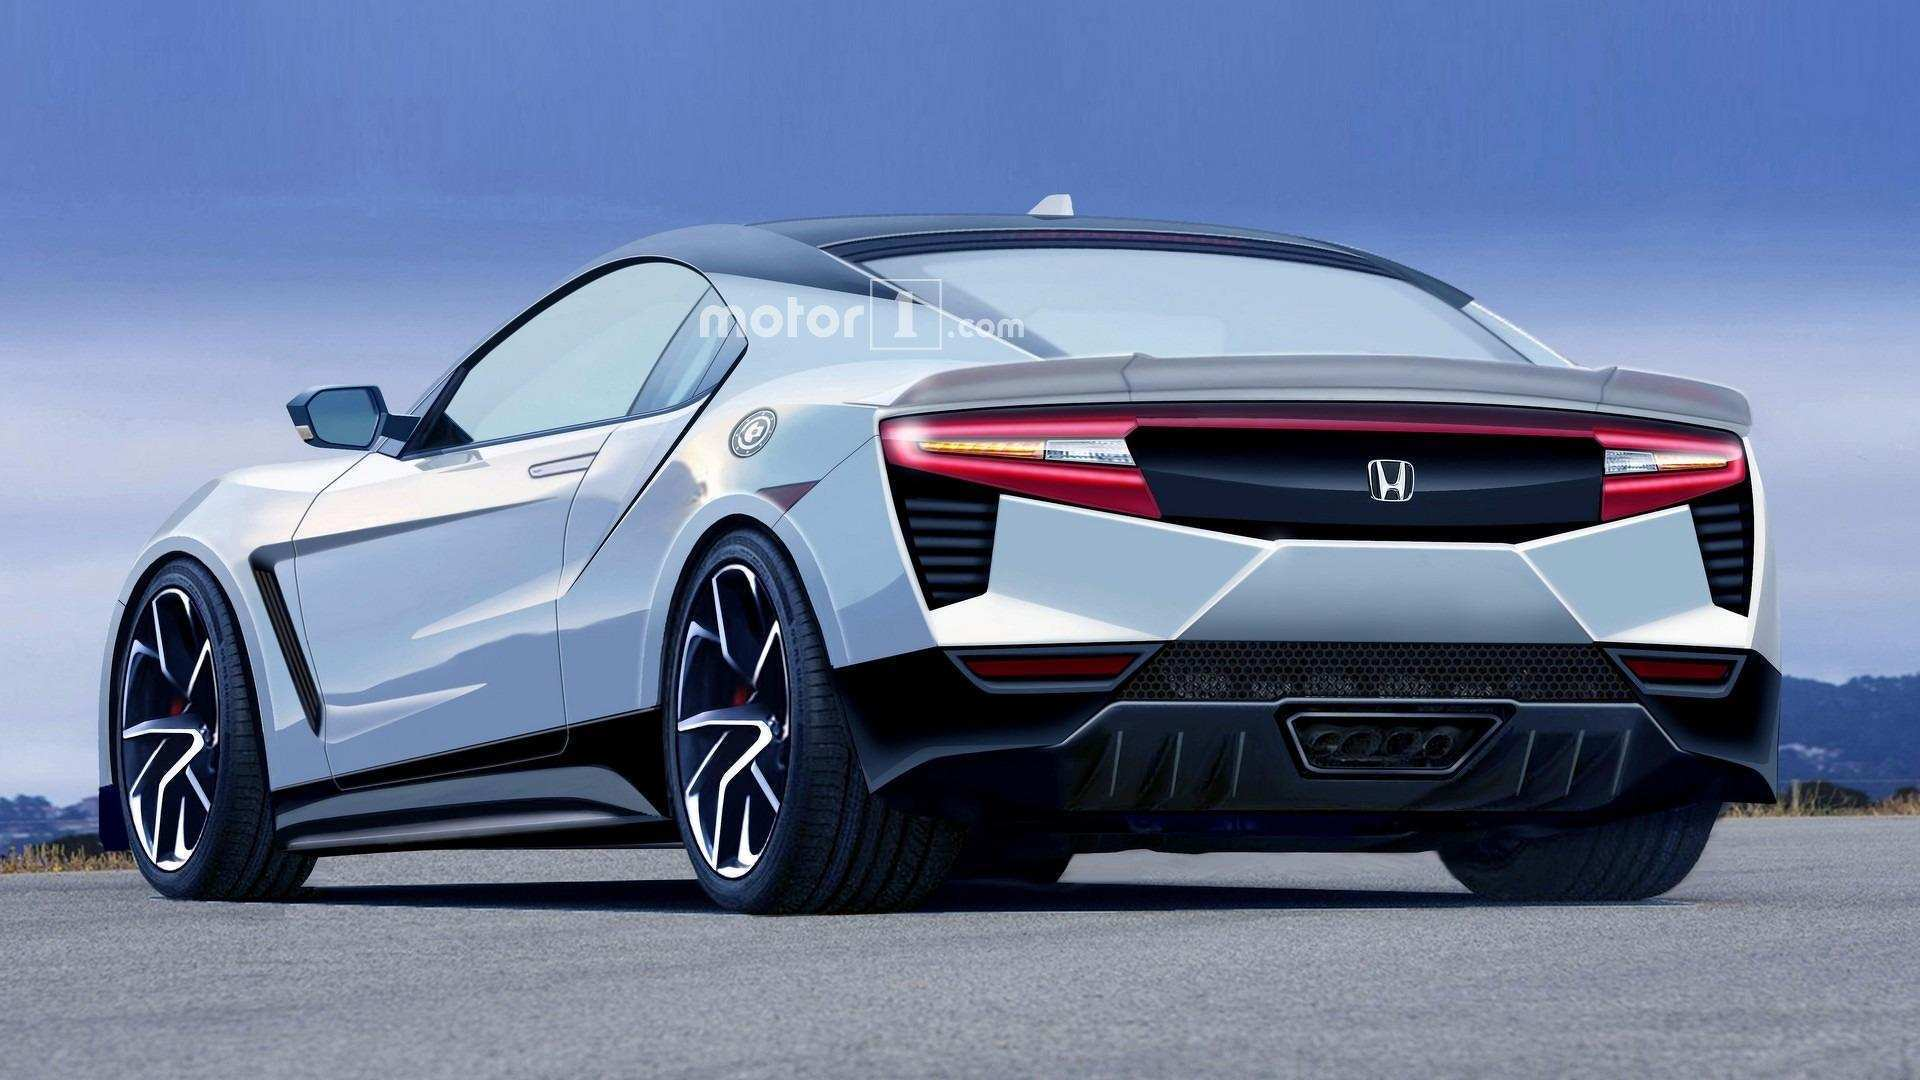 32 New New Acura Usa 2019 Concept Speed Test for New Acura Usa 2019 Concept